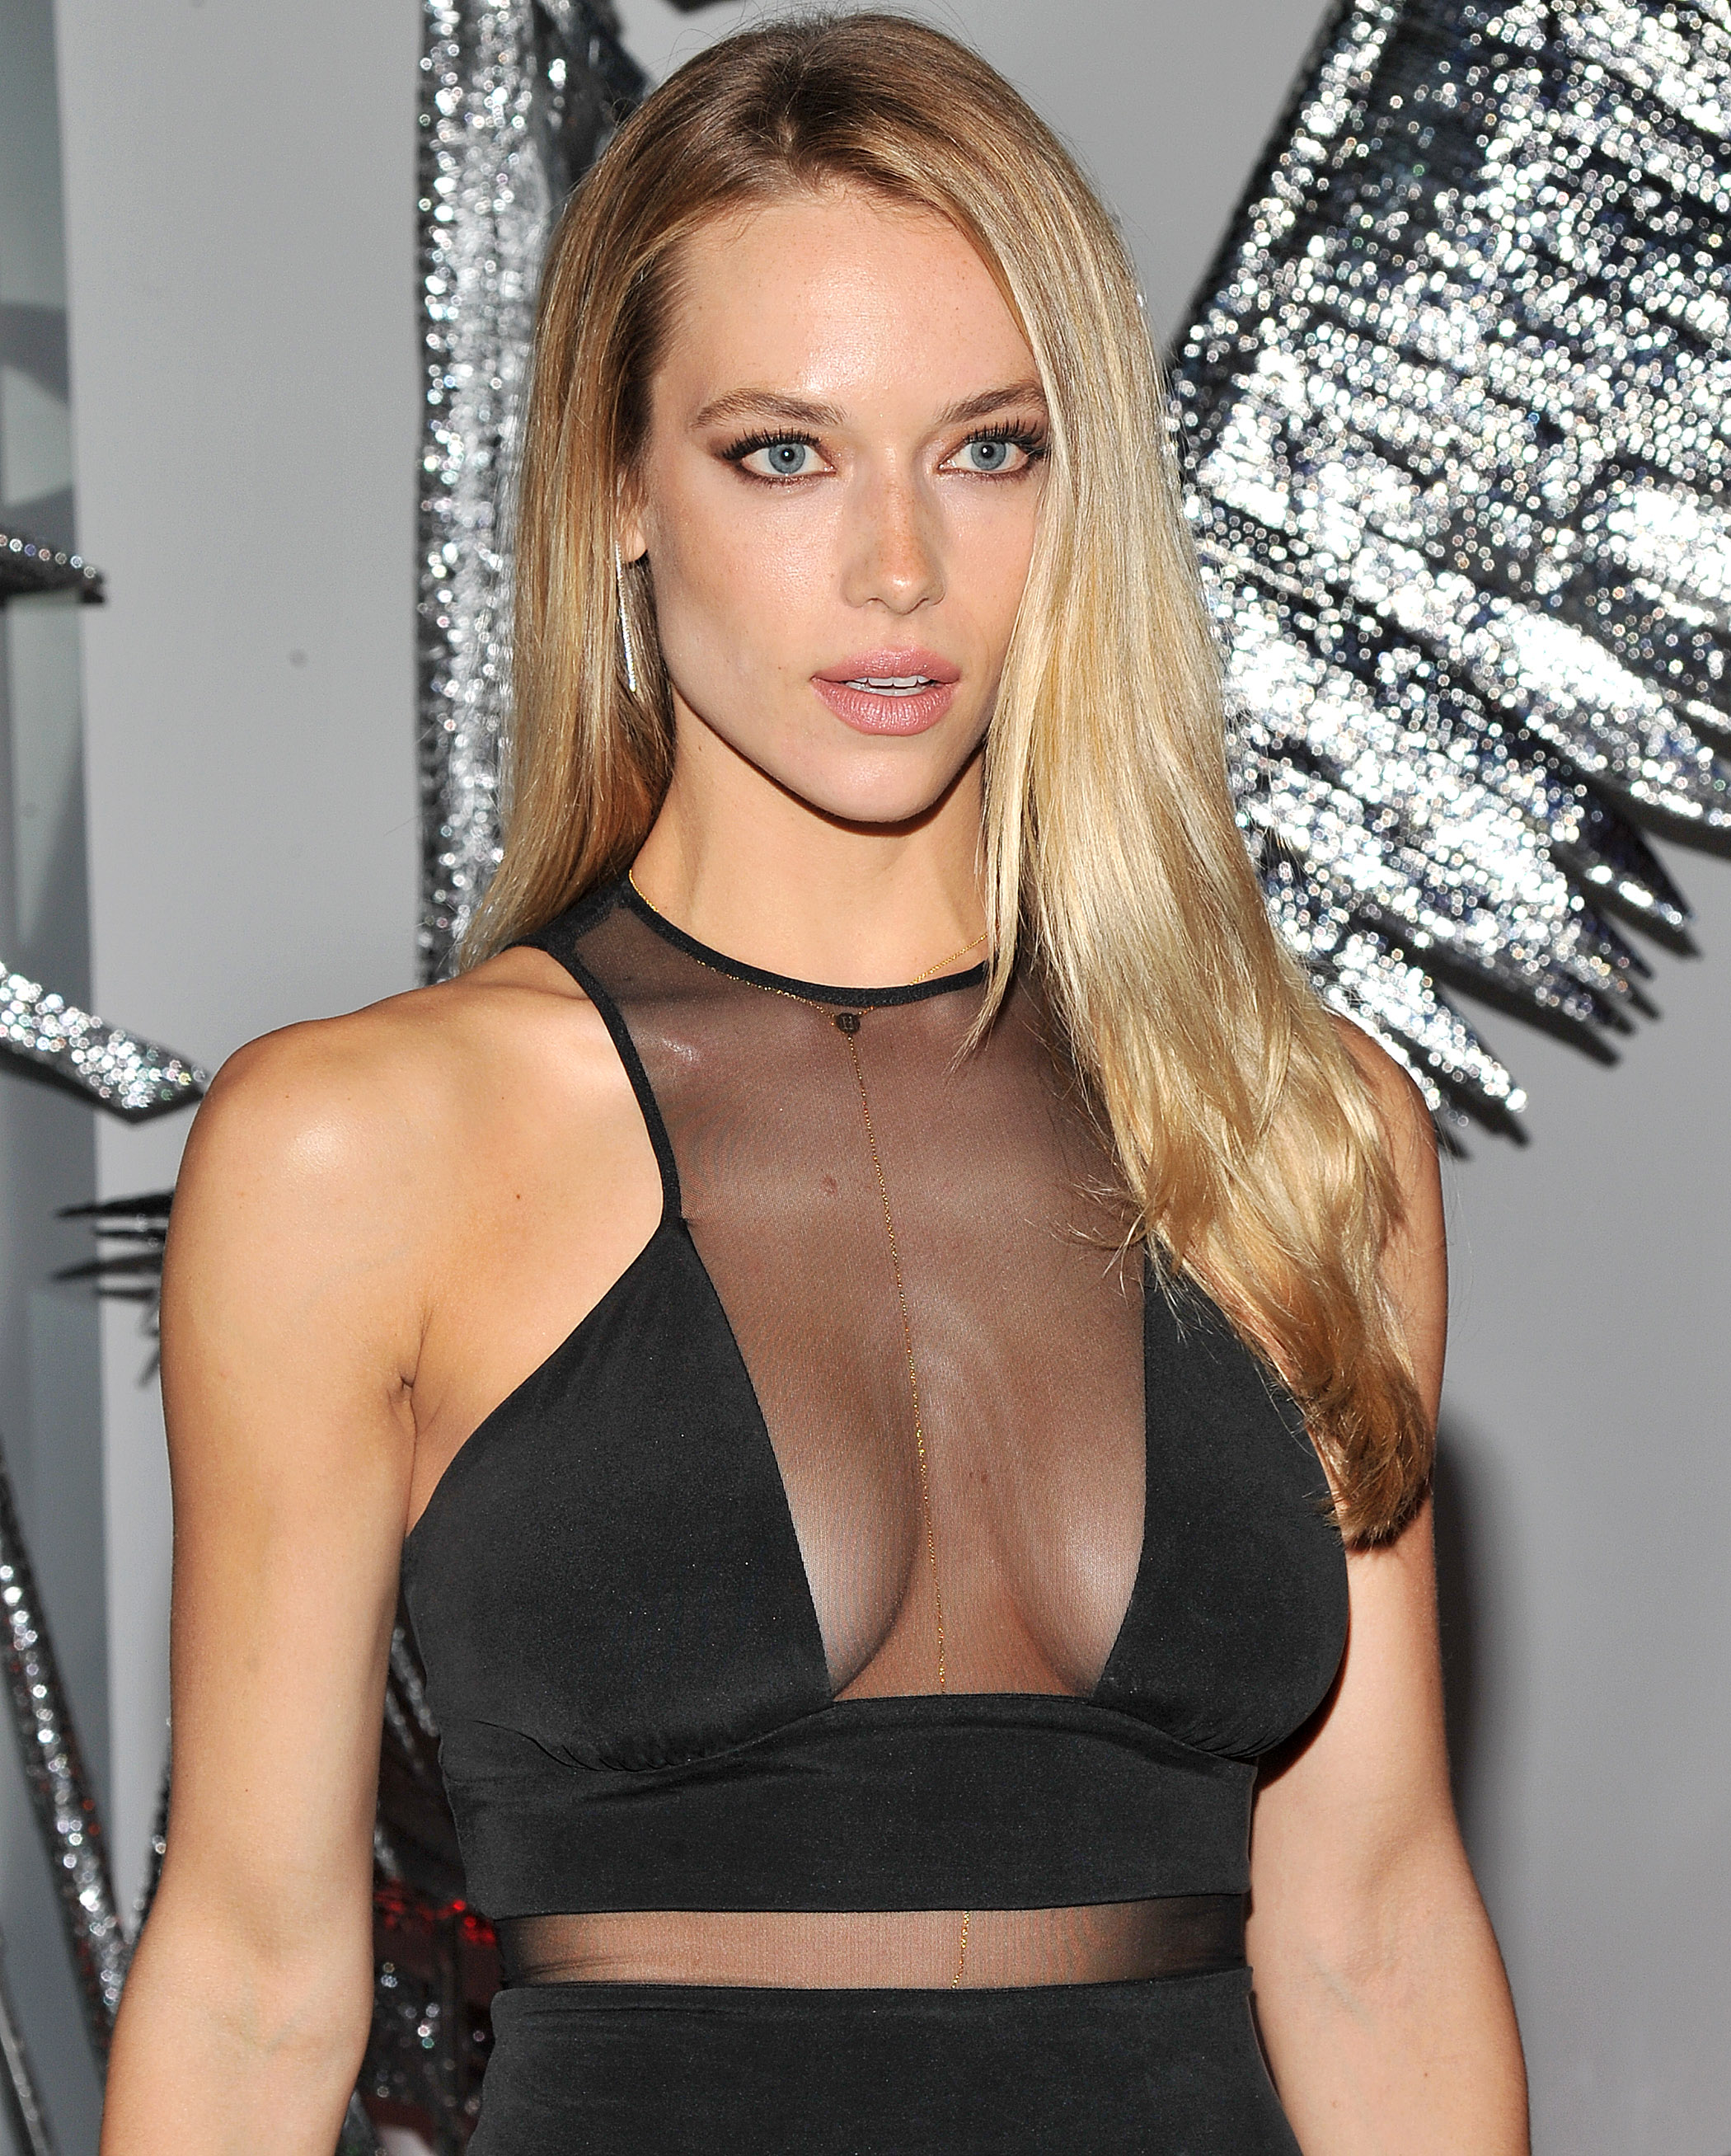 Hannah Ferguson arrives at a party at a W Hotel (Photo credit: Splash News)